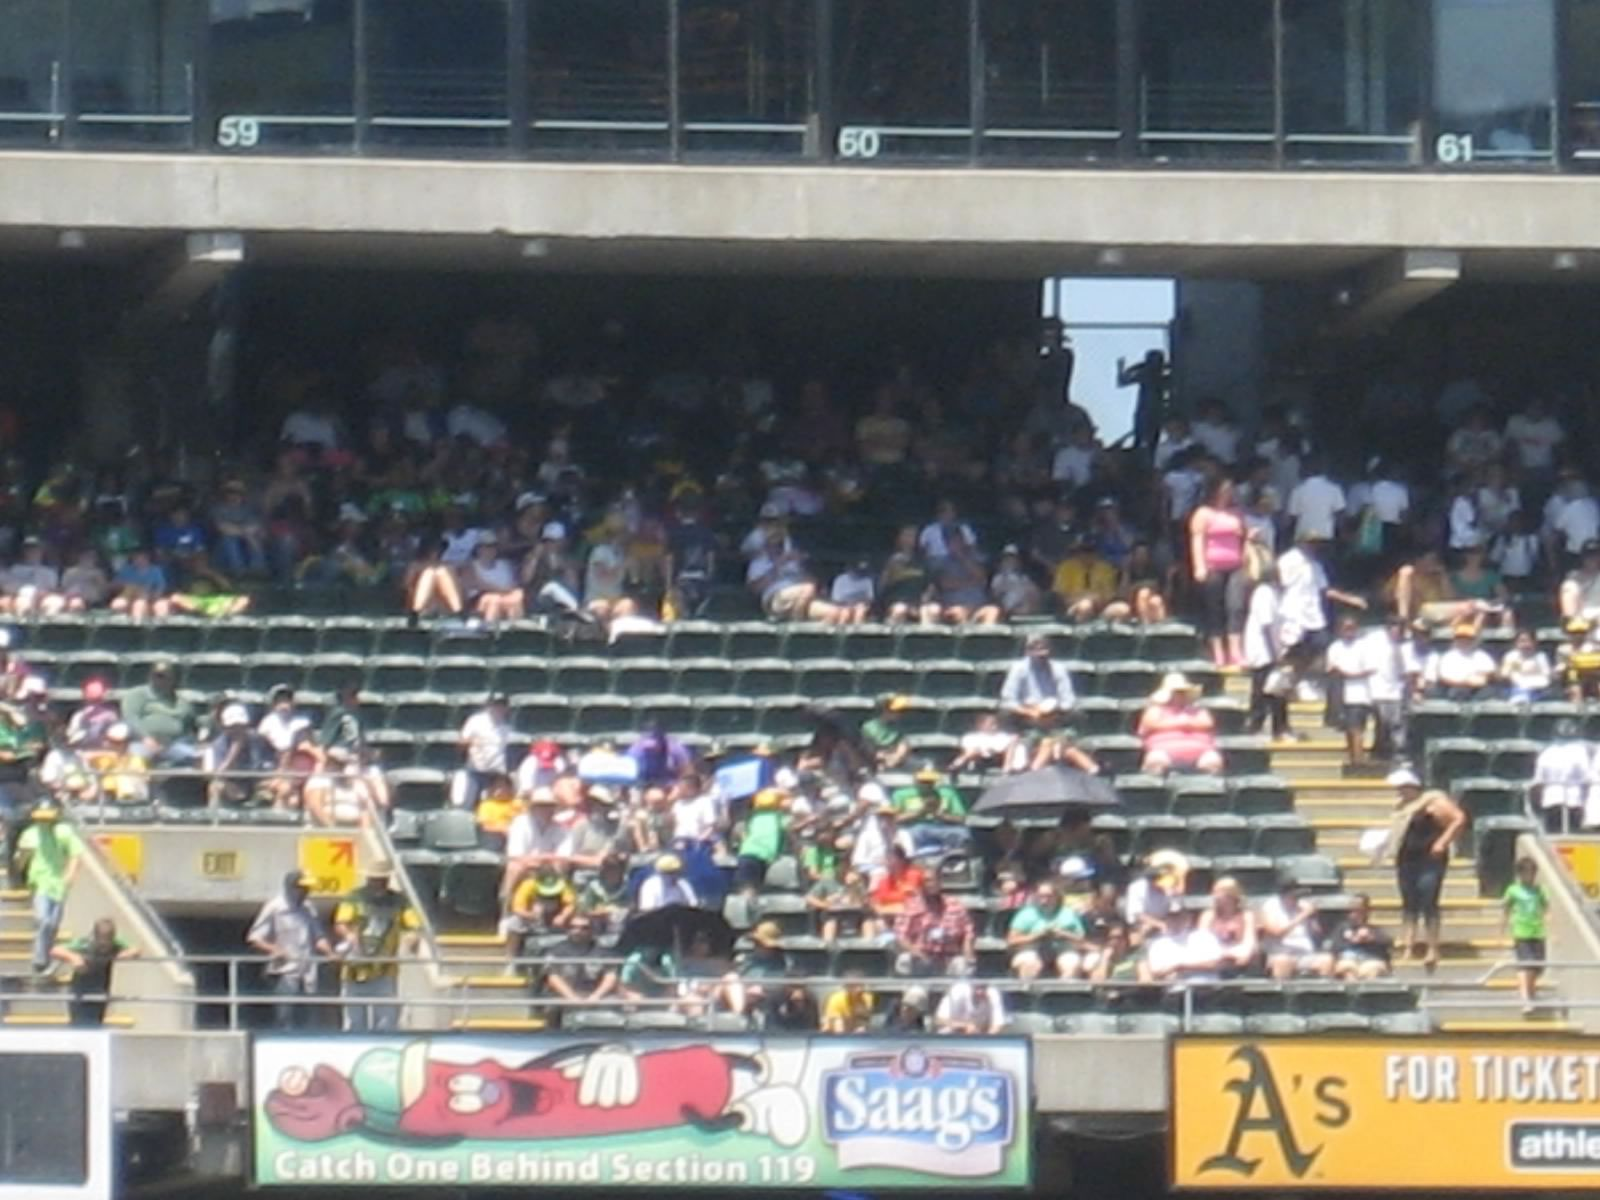 Oakland Athletics Seating Guide Oakland Coliseum